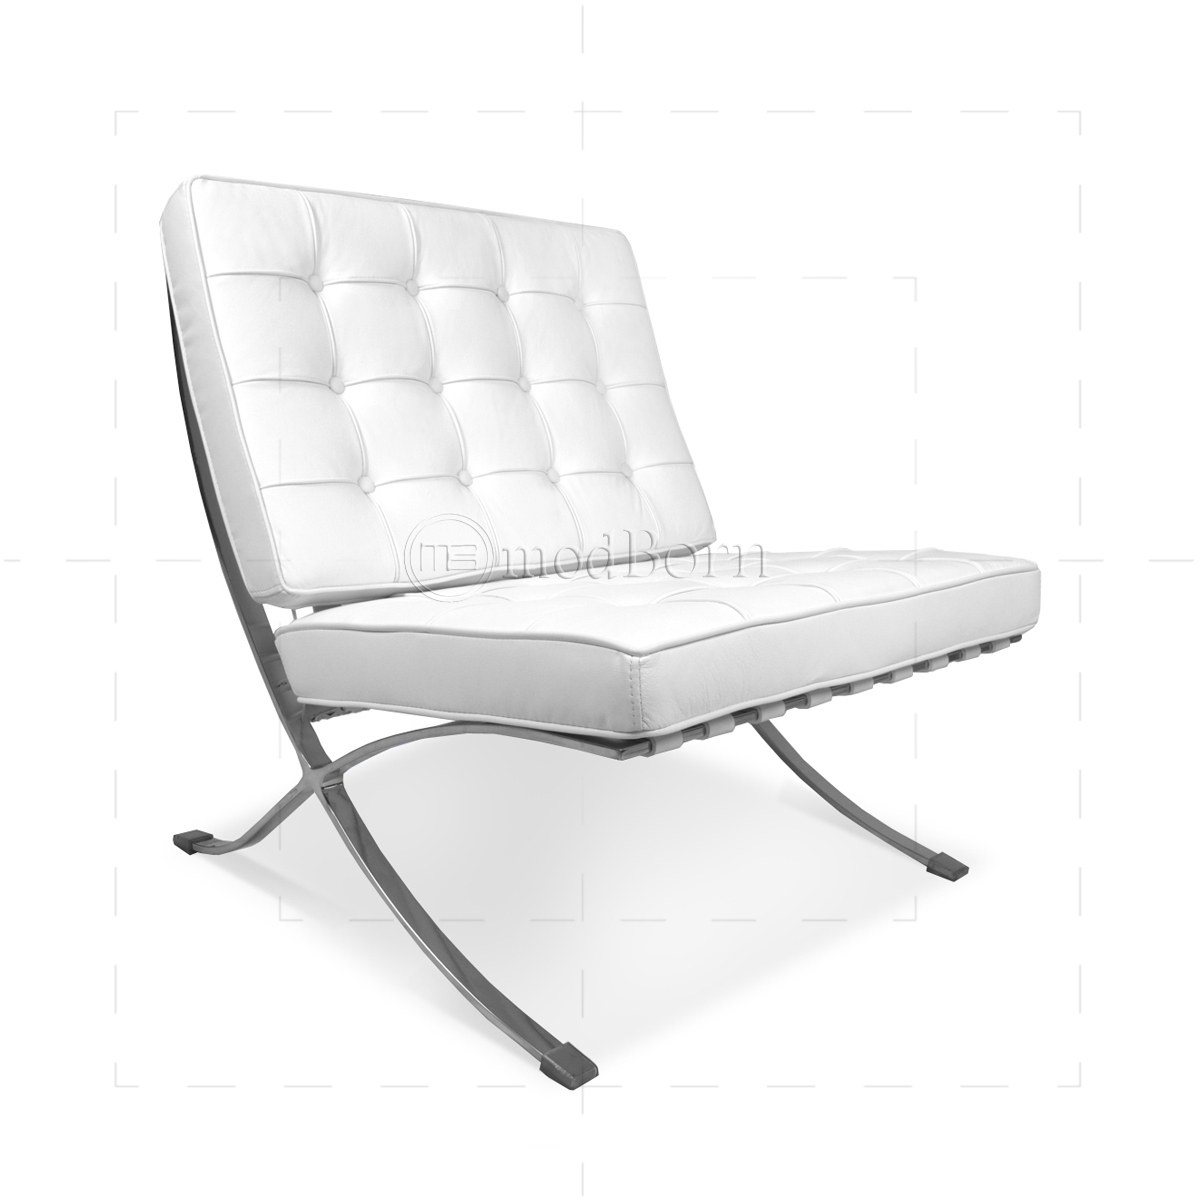 Awesome Ludwig Mies Van Der Rohe Barcelona Style Chair White Leather Ncnpc Chair Design For Home Ncnpcorg